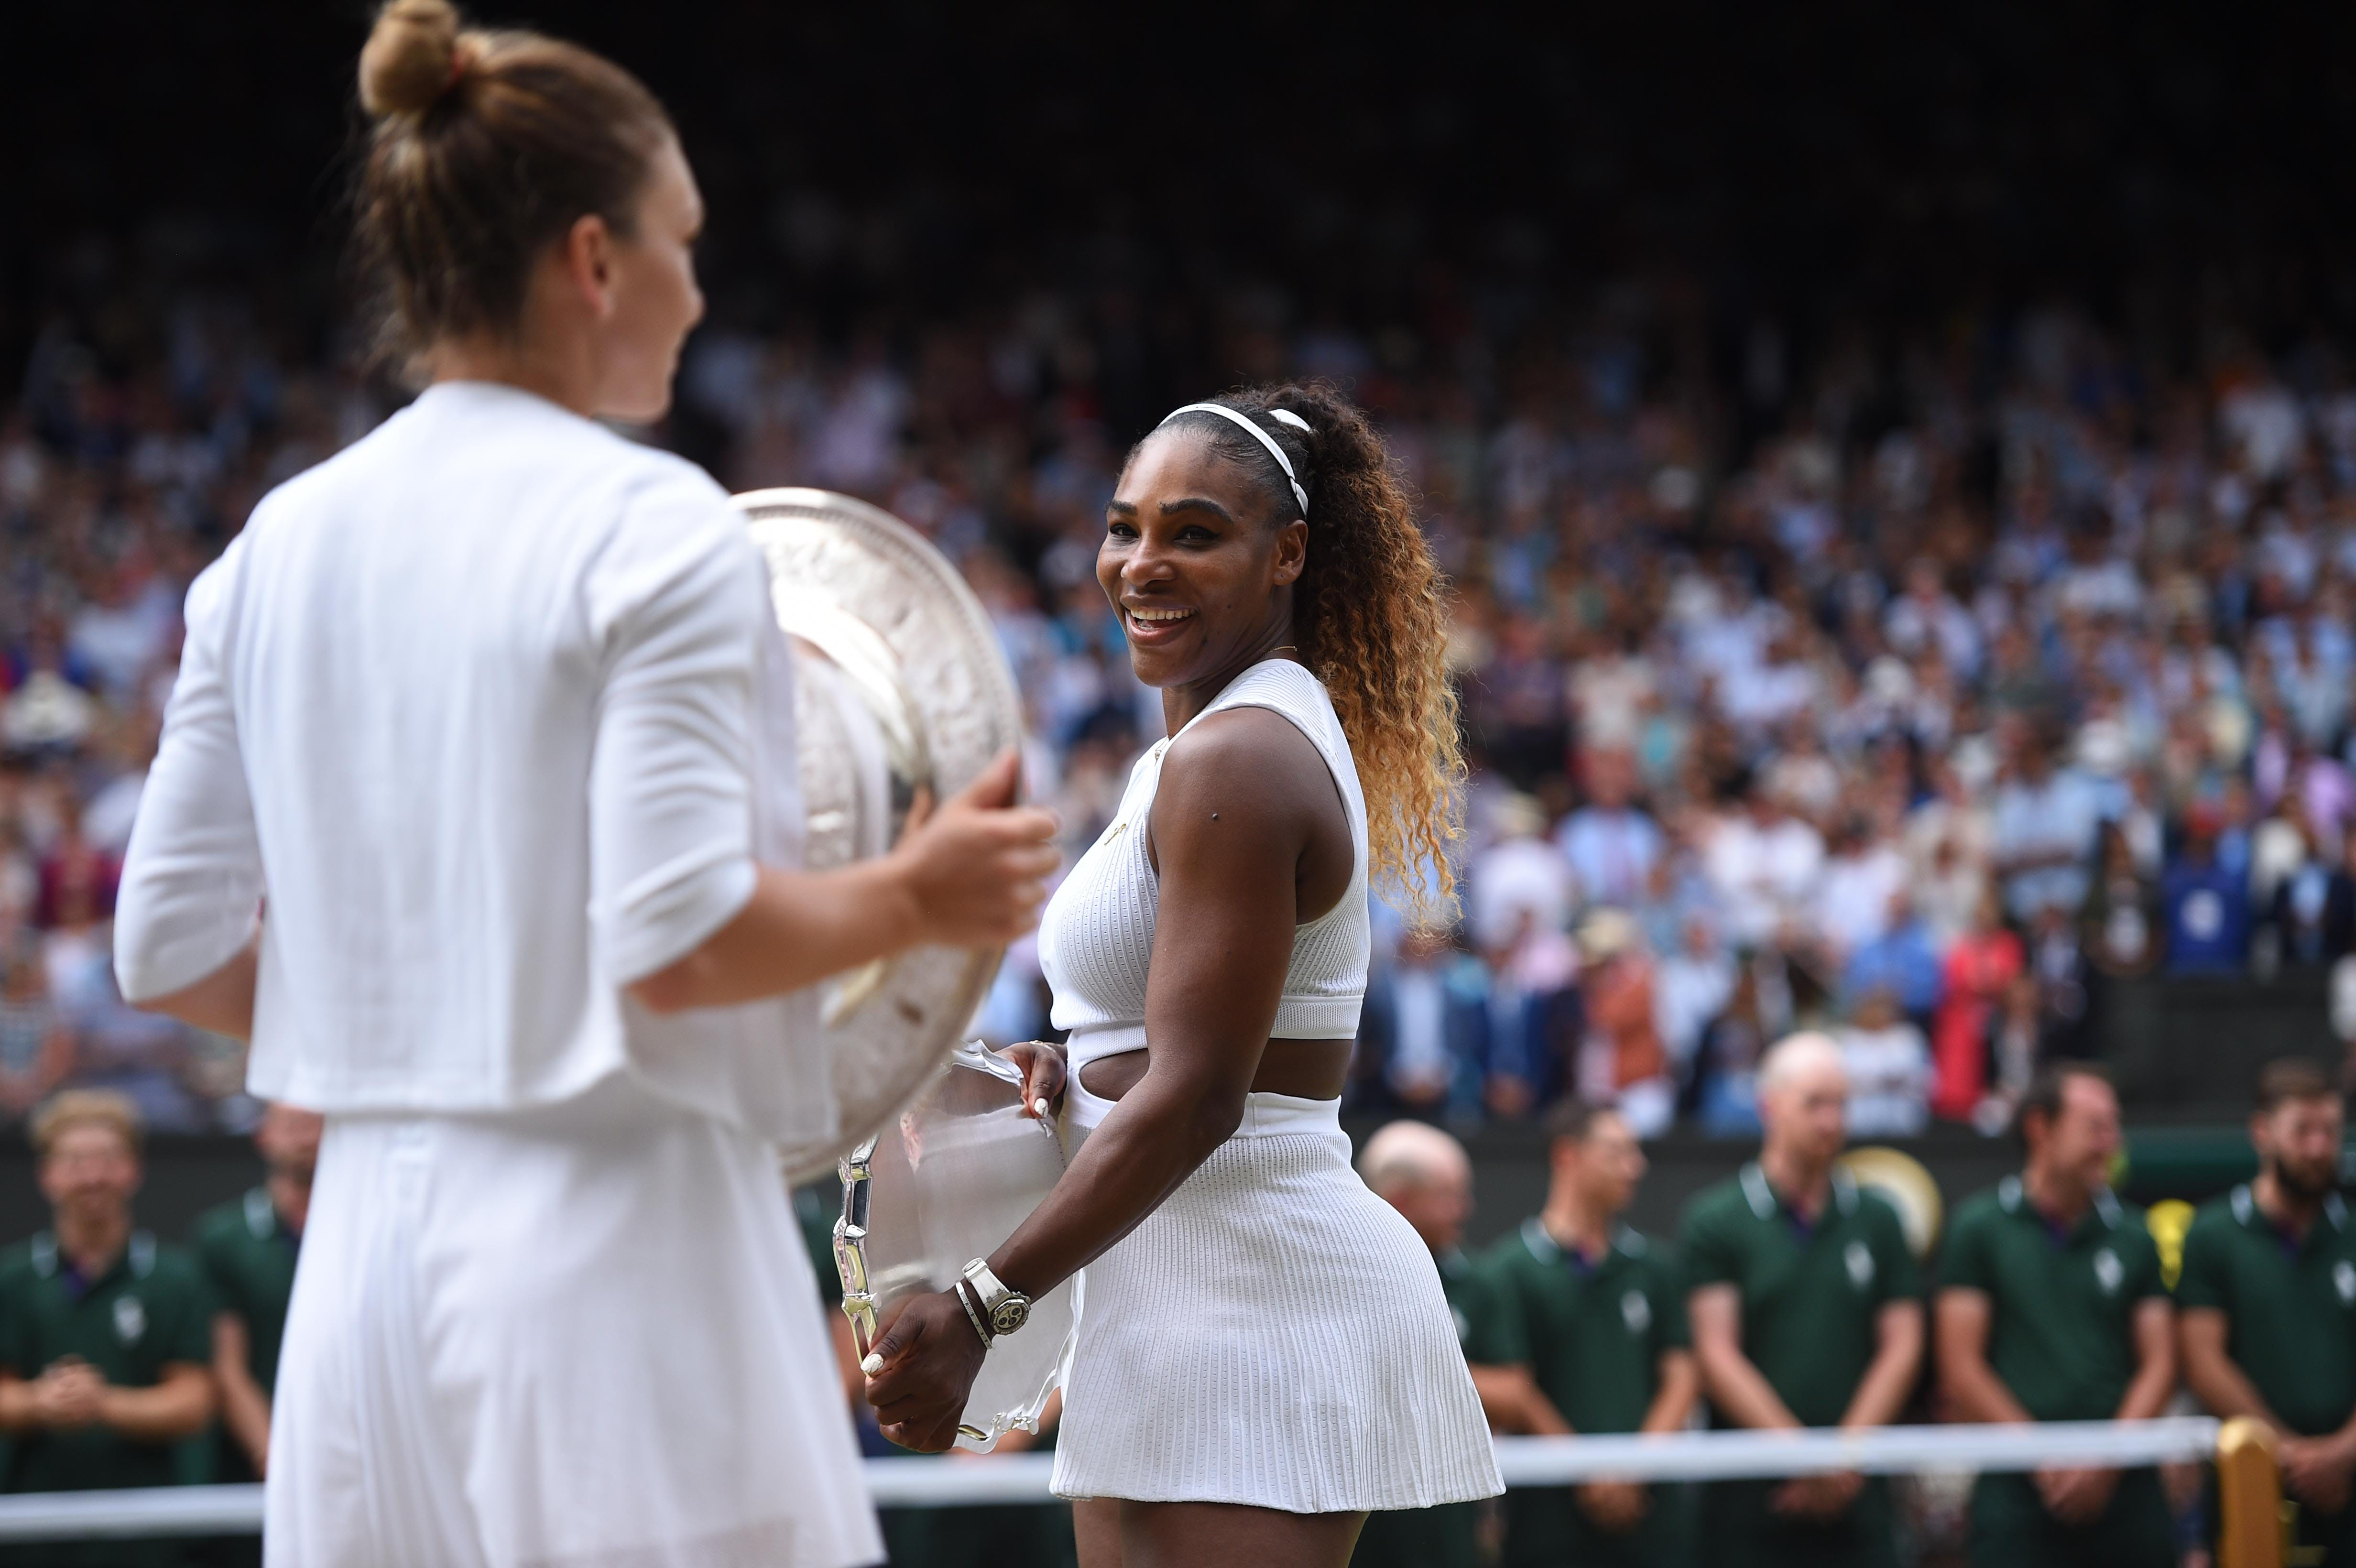 Serena Williams  looking smiling at Simona Halep and her Wimbledon 2019 trophy.